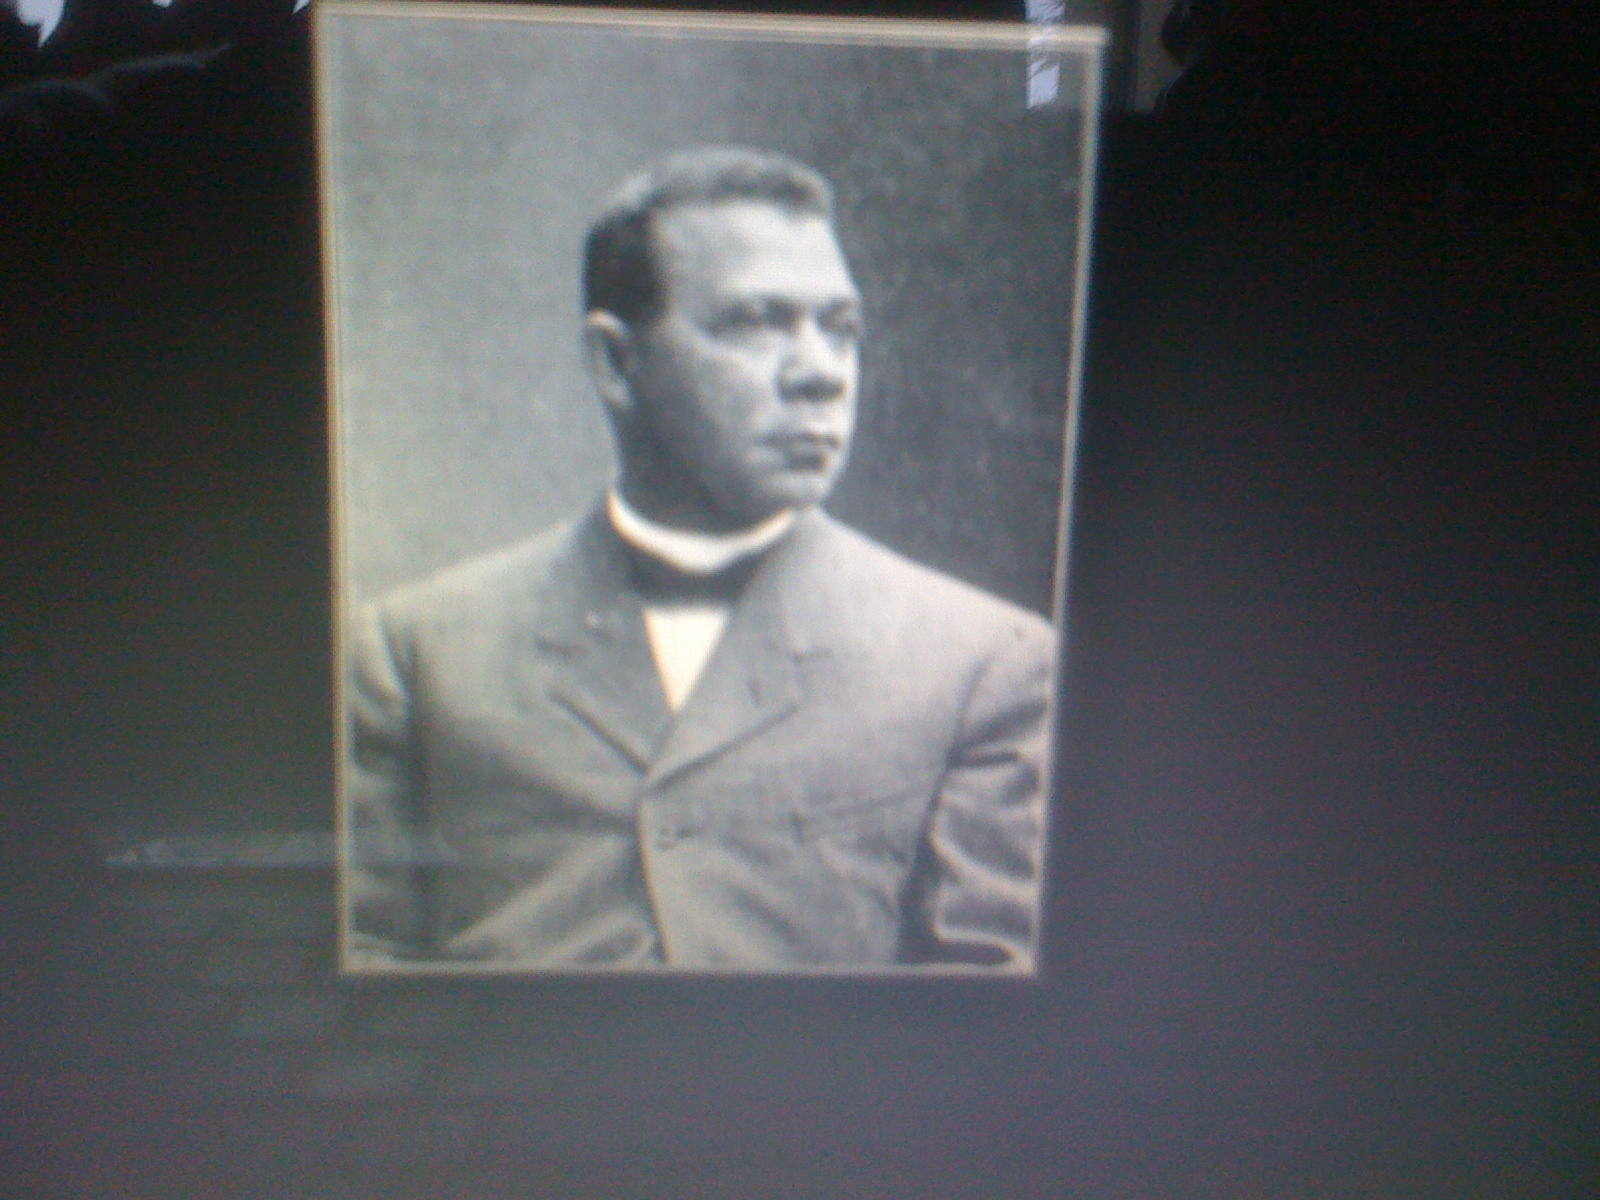 african american history booker t washington and Booker t washington born a slave on a virginia farm, washington (1856-1915) rose to become one of the most influential african-american intellectuals of the late 19th century in 1881, he founded the tuskegee institute, a black school in alabama devoted to training teachers.